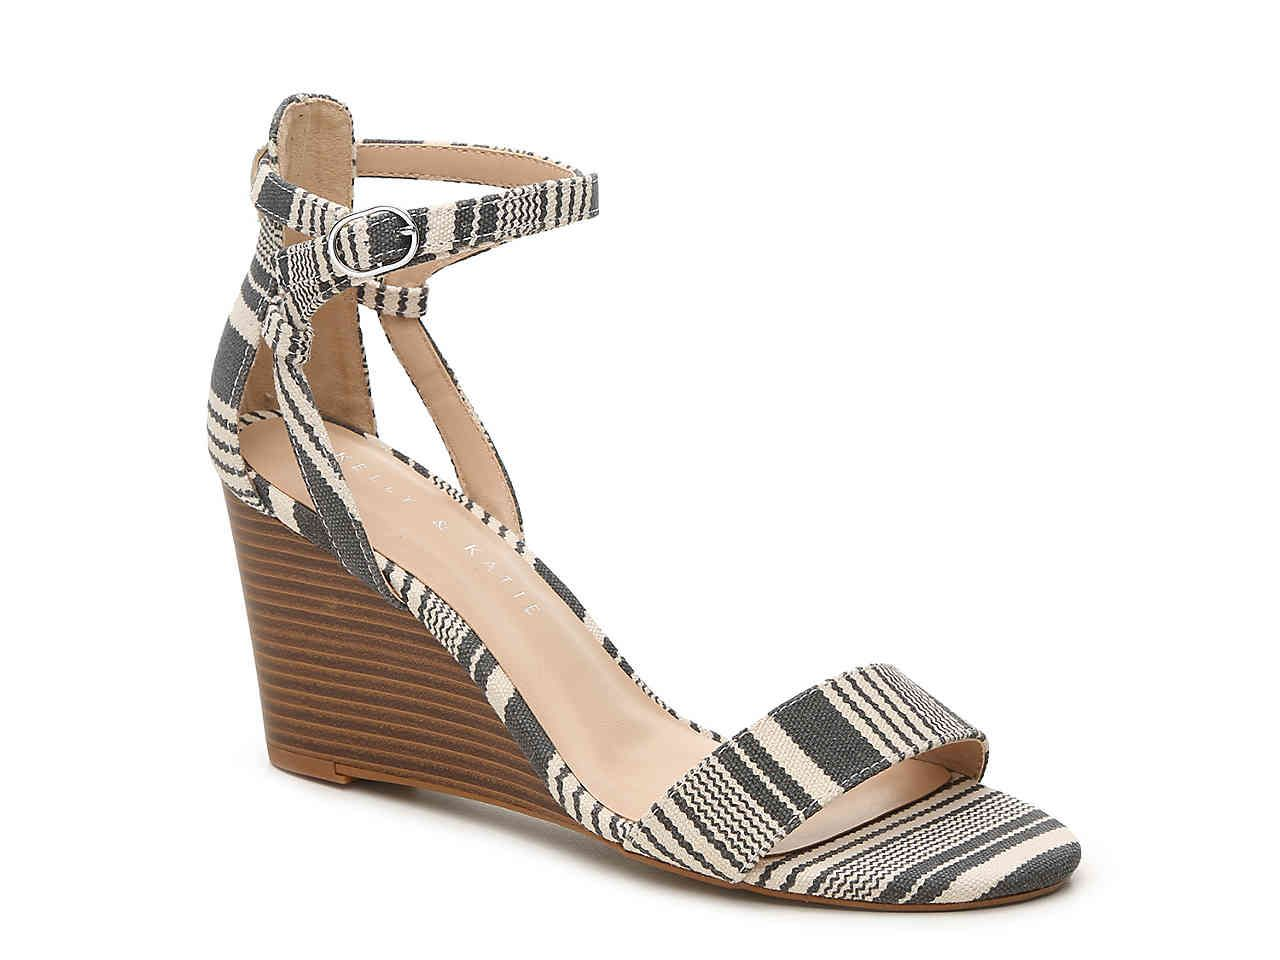 fe05d5f06a91 Tamra Wedge Sandal DESCRIPTION Simple yet chic is the name of the game with  the Kelly